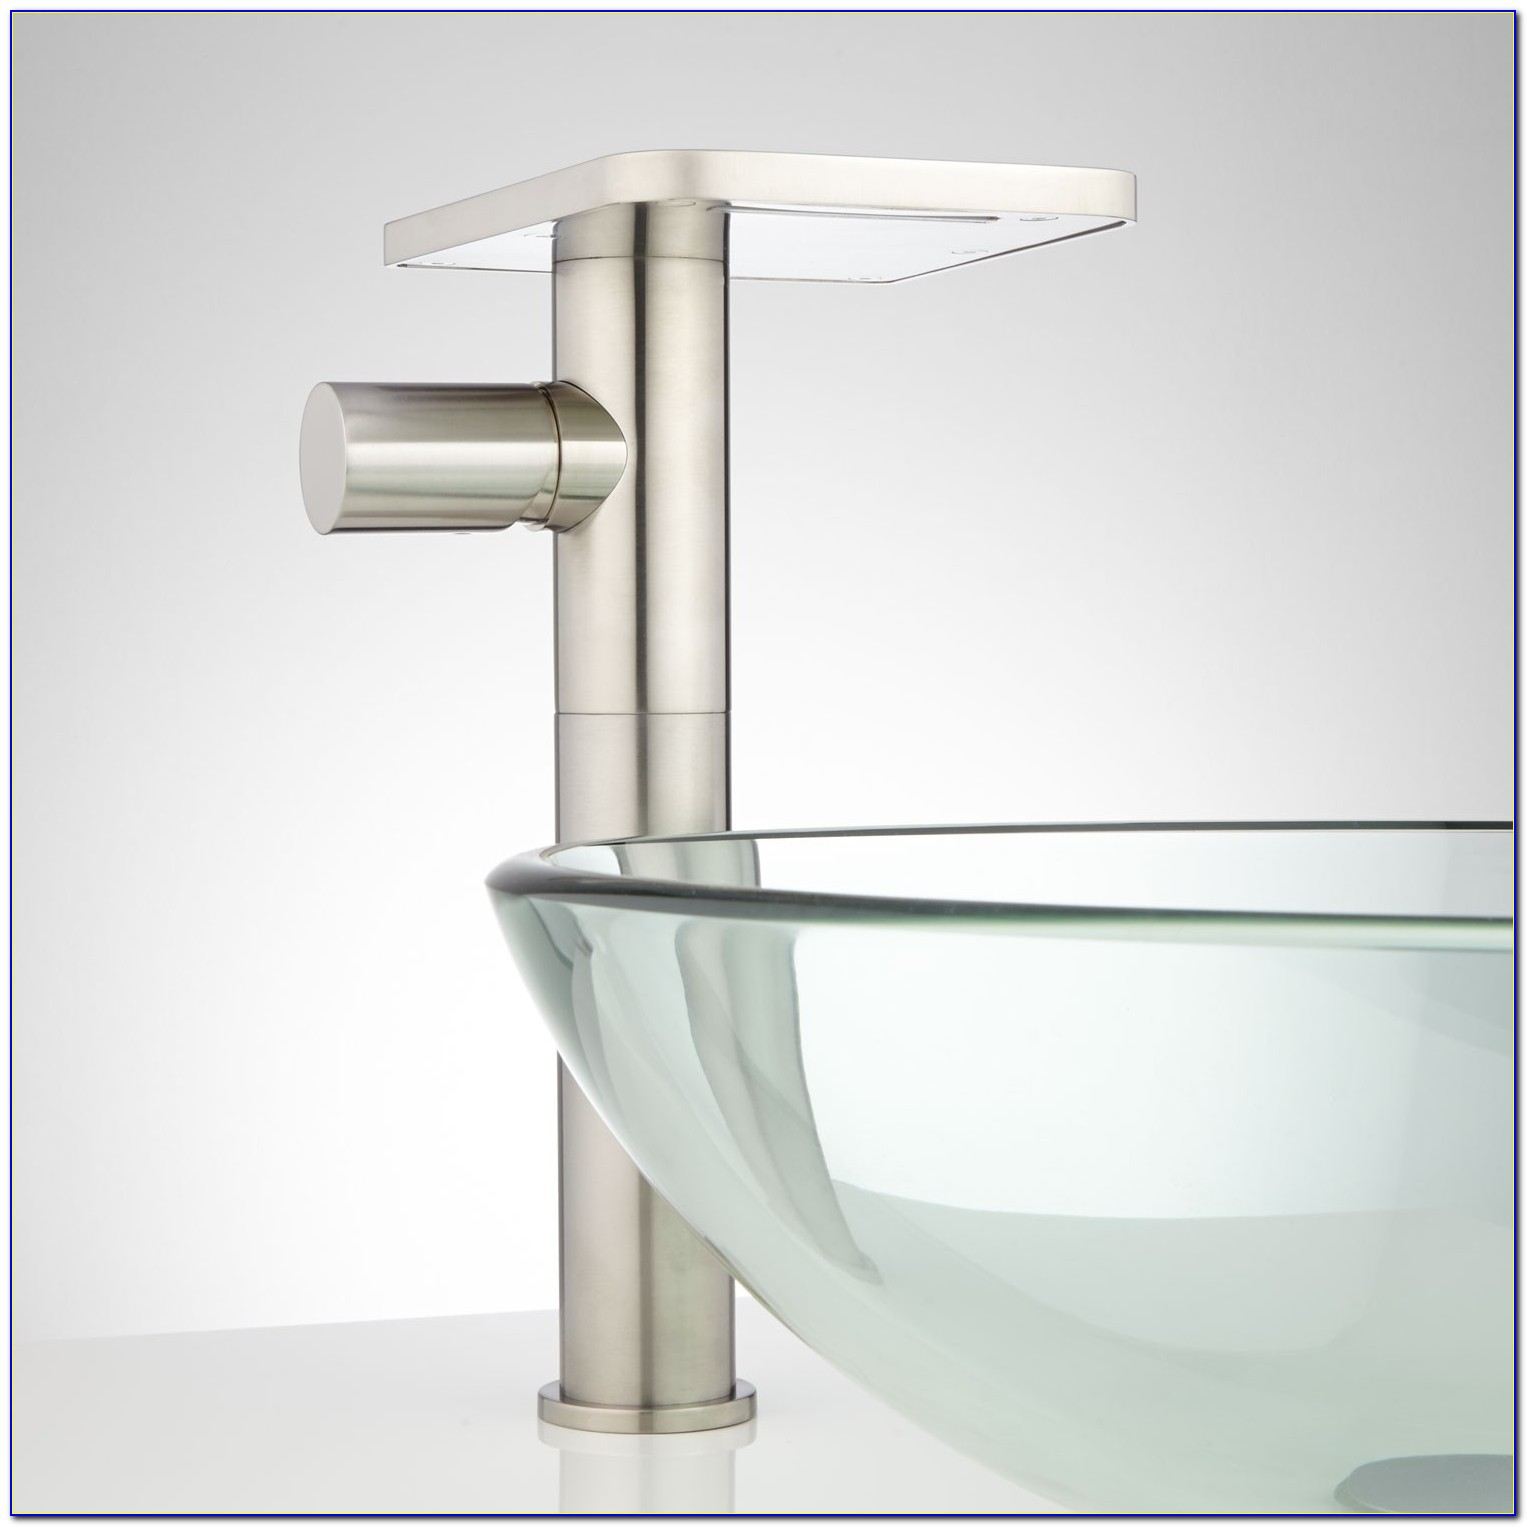 Bronze Waterfall Faucet For Vessel Sink